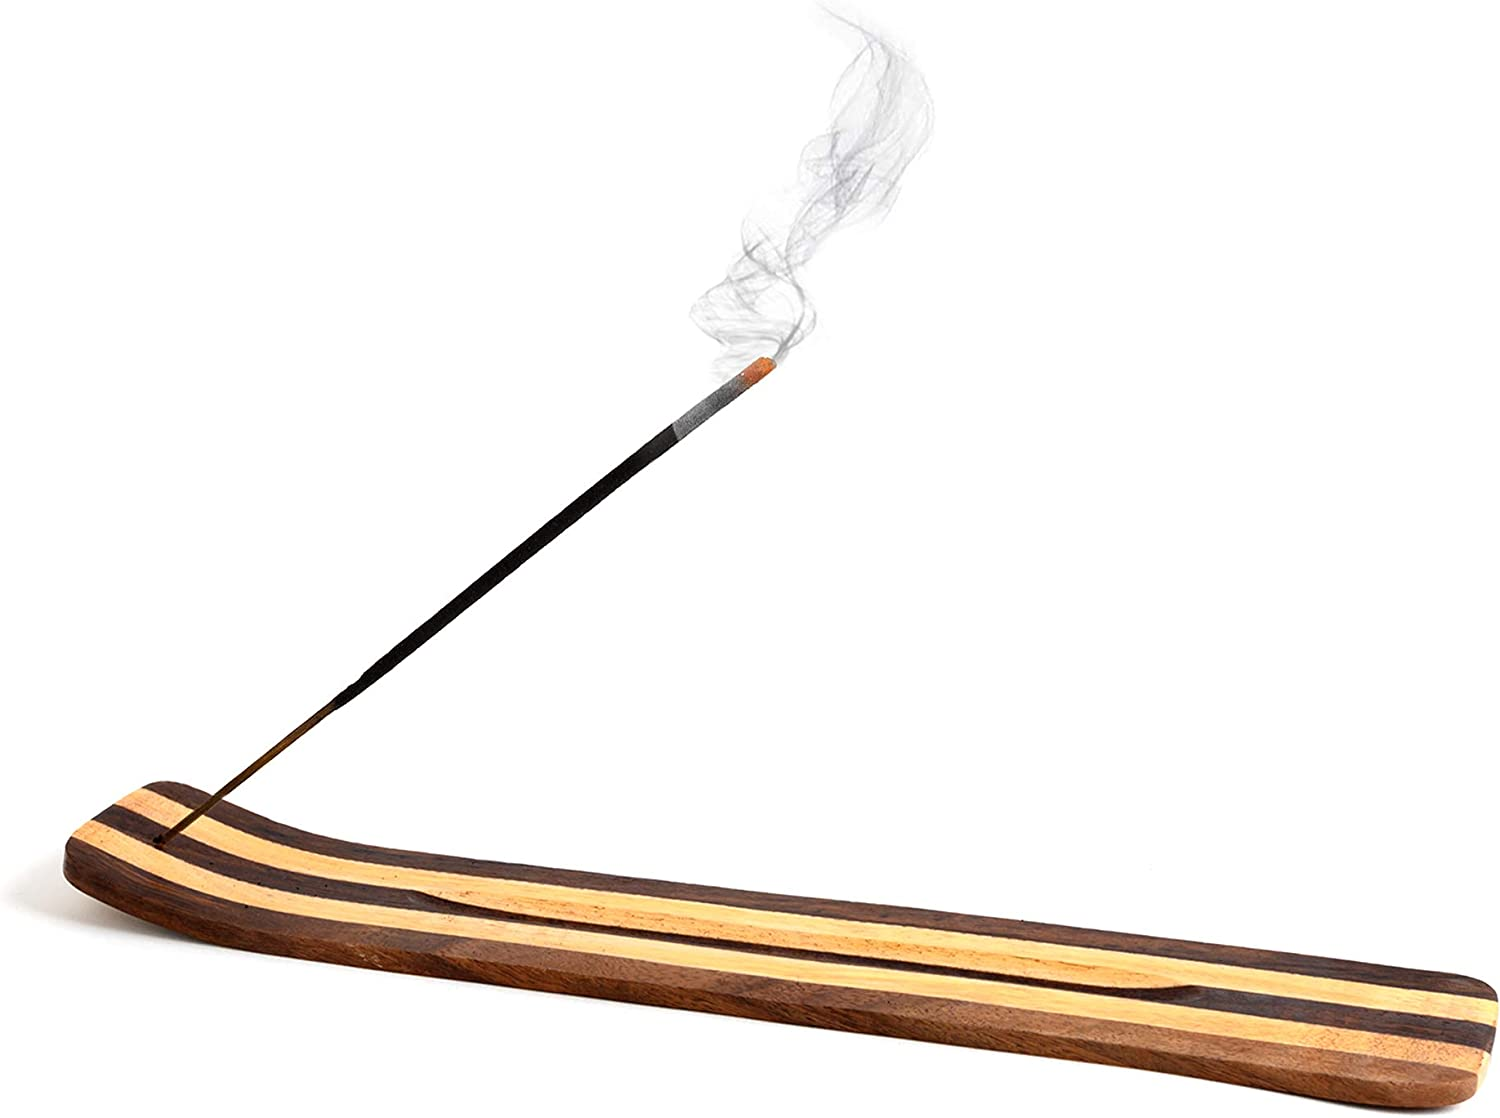 Wooden Incense Holder for Sticks Two Toned Striped Smooth Wood 10 inches Long